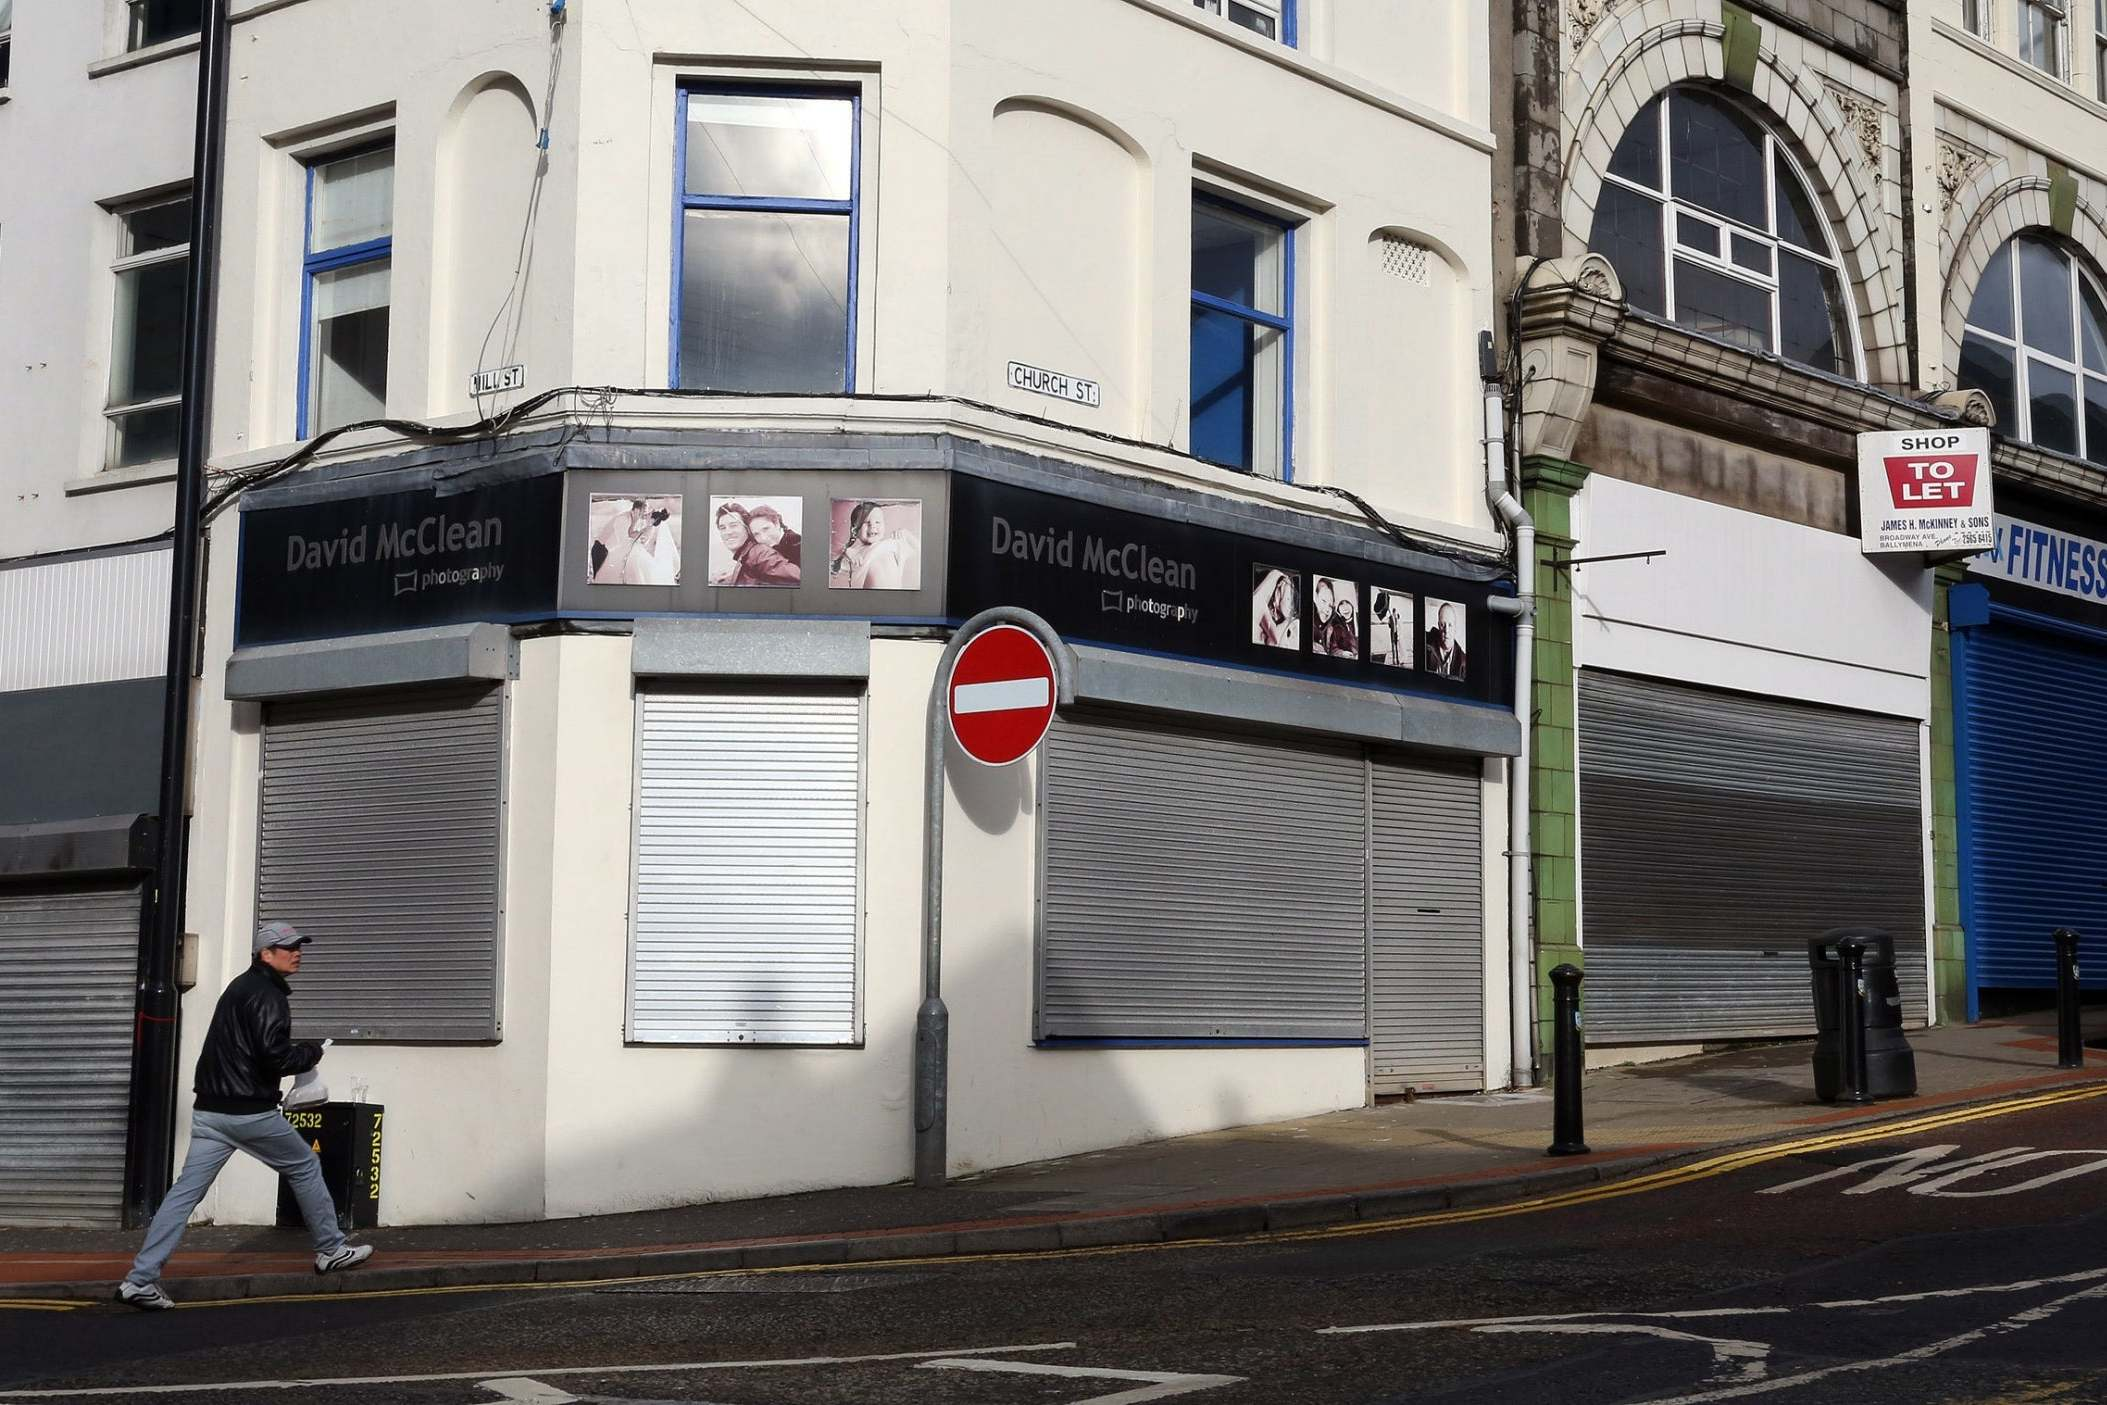 High street crisis: One in 10 shops empty as vacancy rate hits